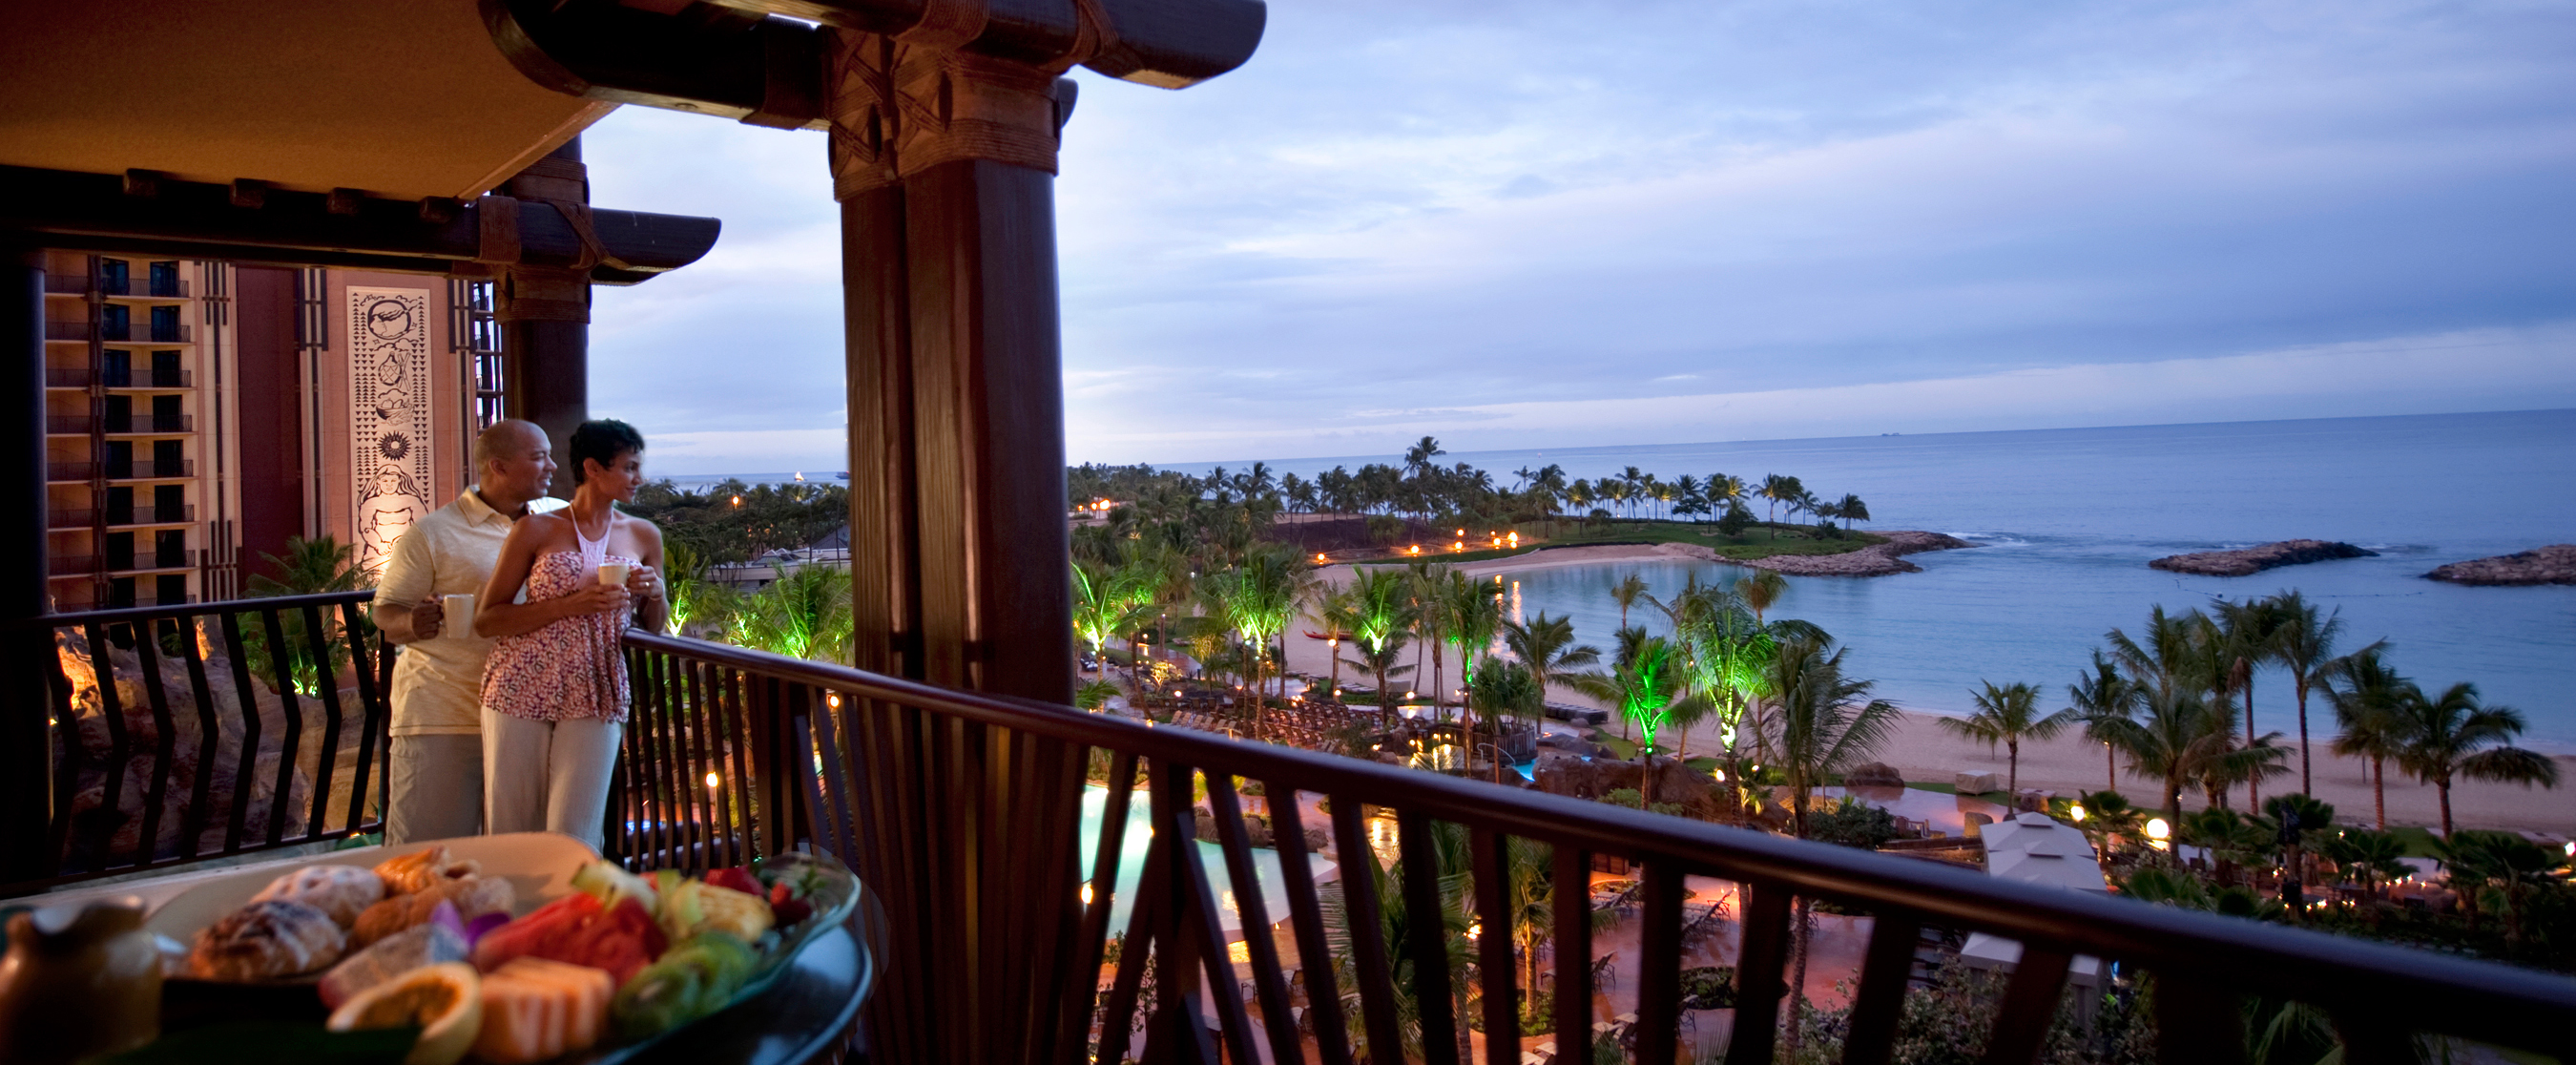 3-Bedroom Grand Villas | Aulani Hawaii Resort & Spa